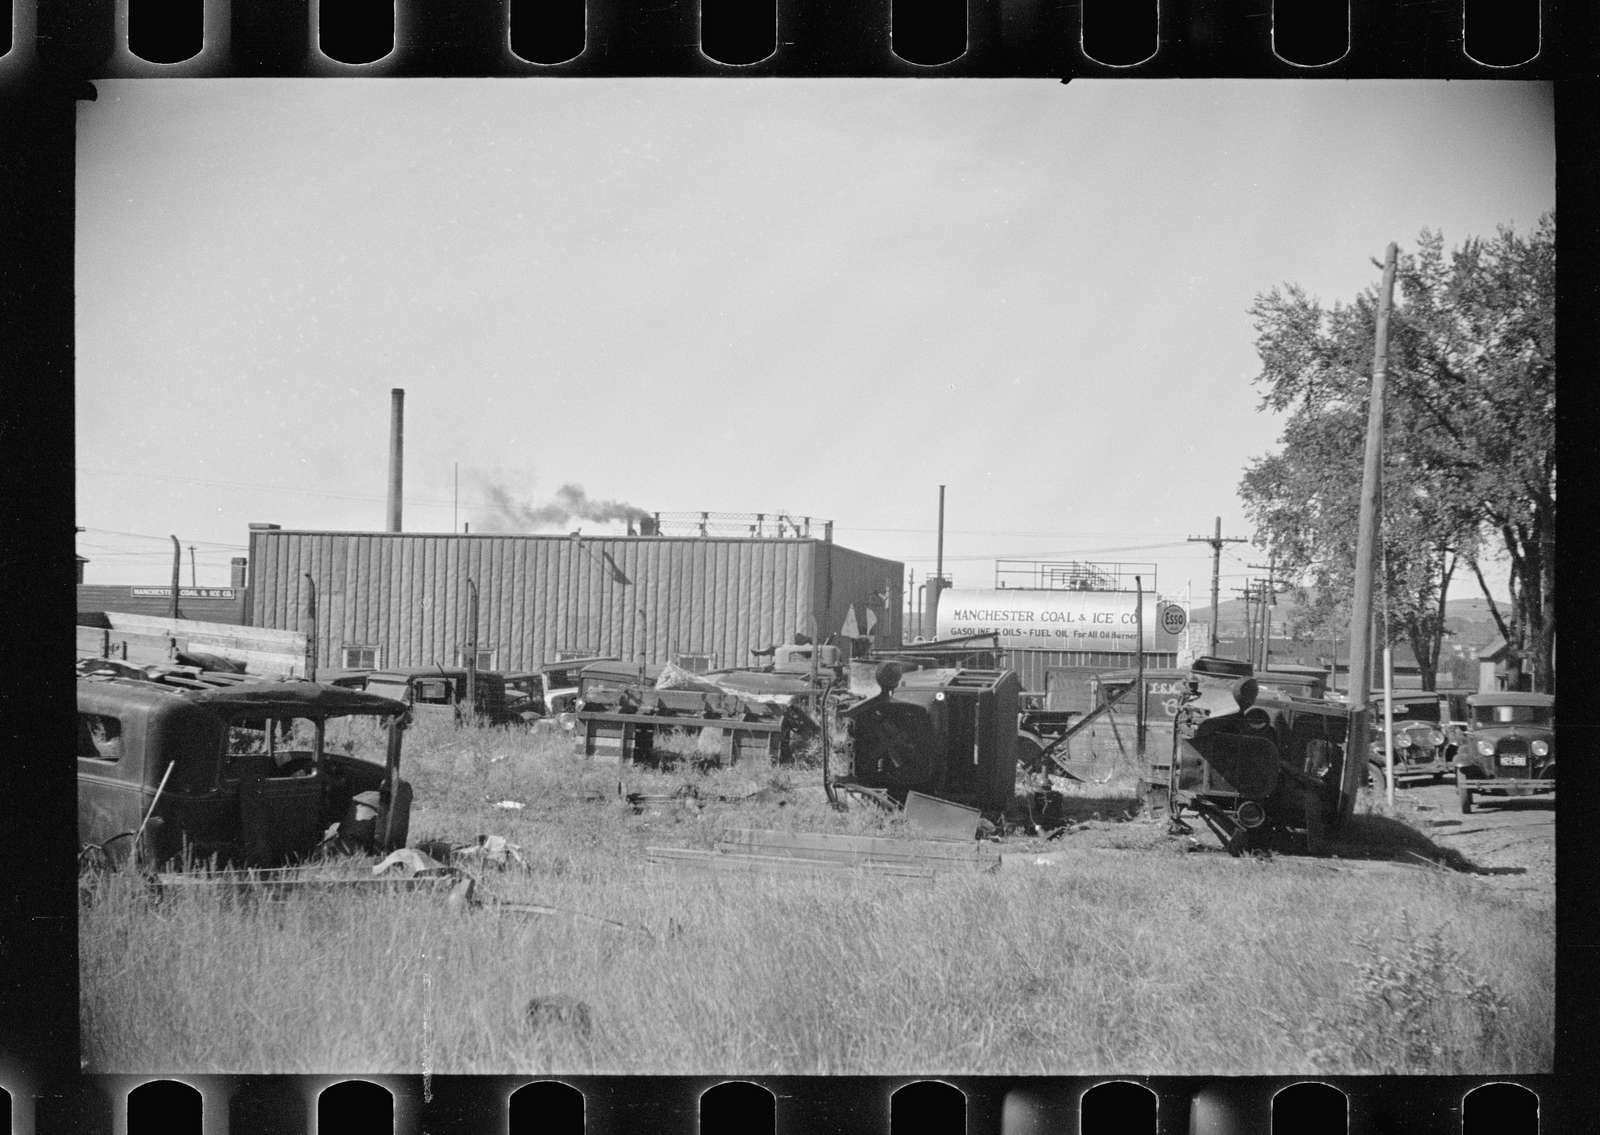 Untitled photo, possibly related to: Manchester jail, Willon and Valley Street, Amoskeag, Manchester, New Hampshire